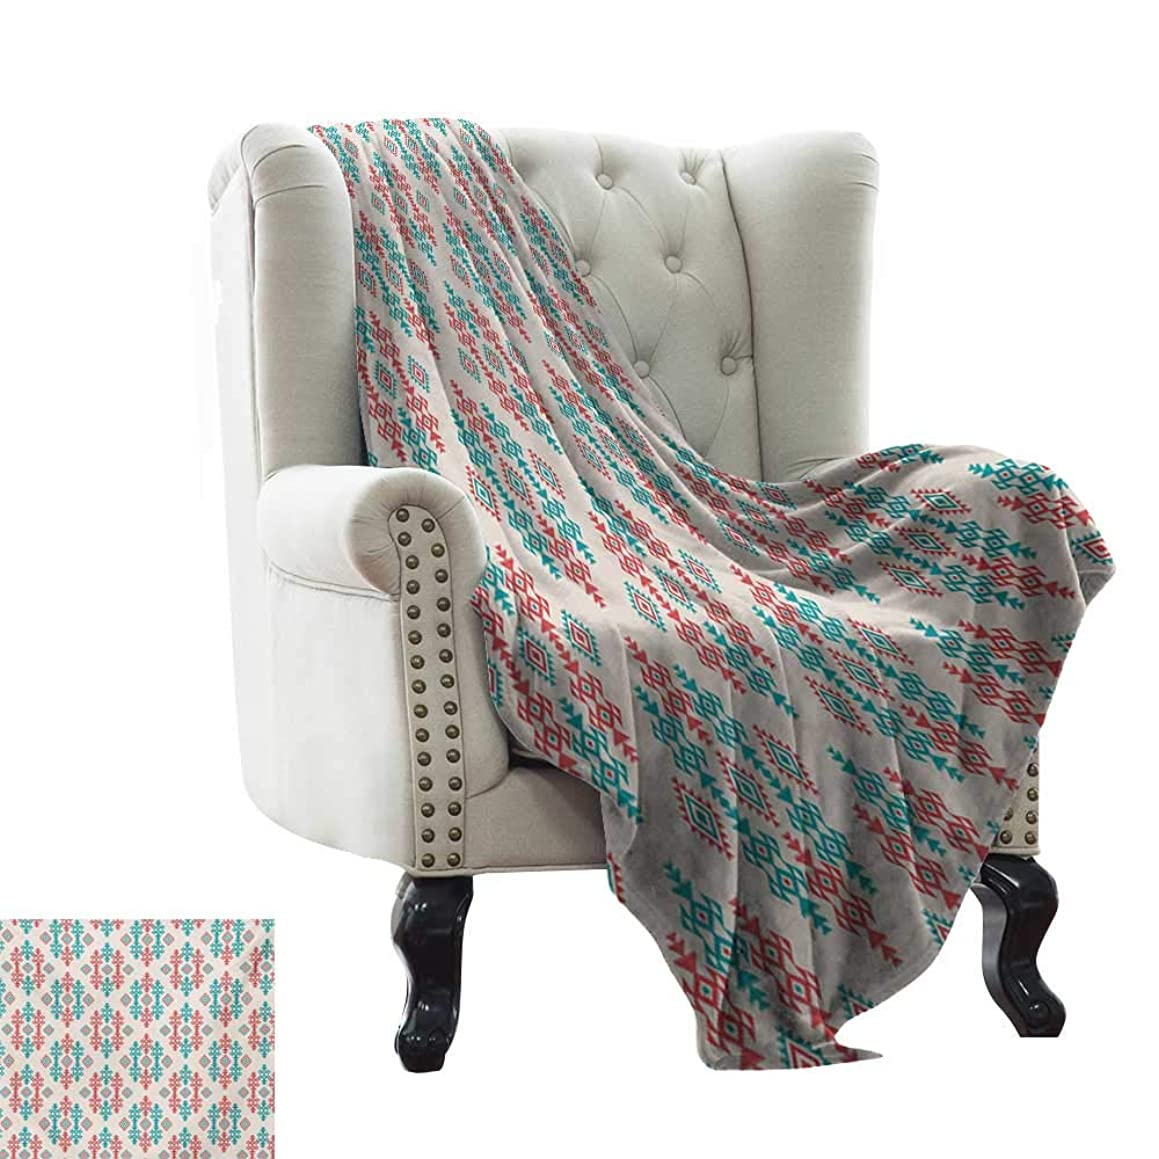 RenteriaDecor Native American,Bed Sheet Ancient Ethnic Traditional Local Aztec Tribal Design Elements 90